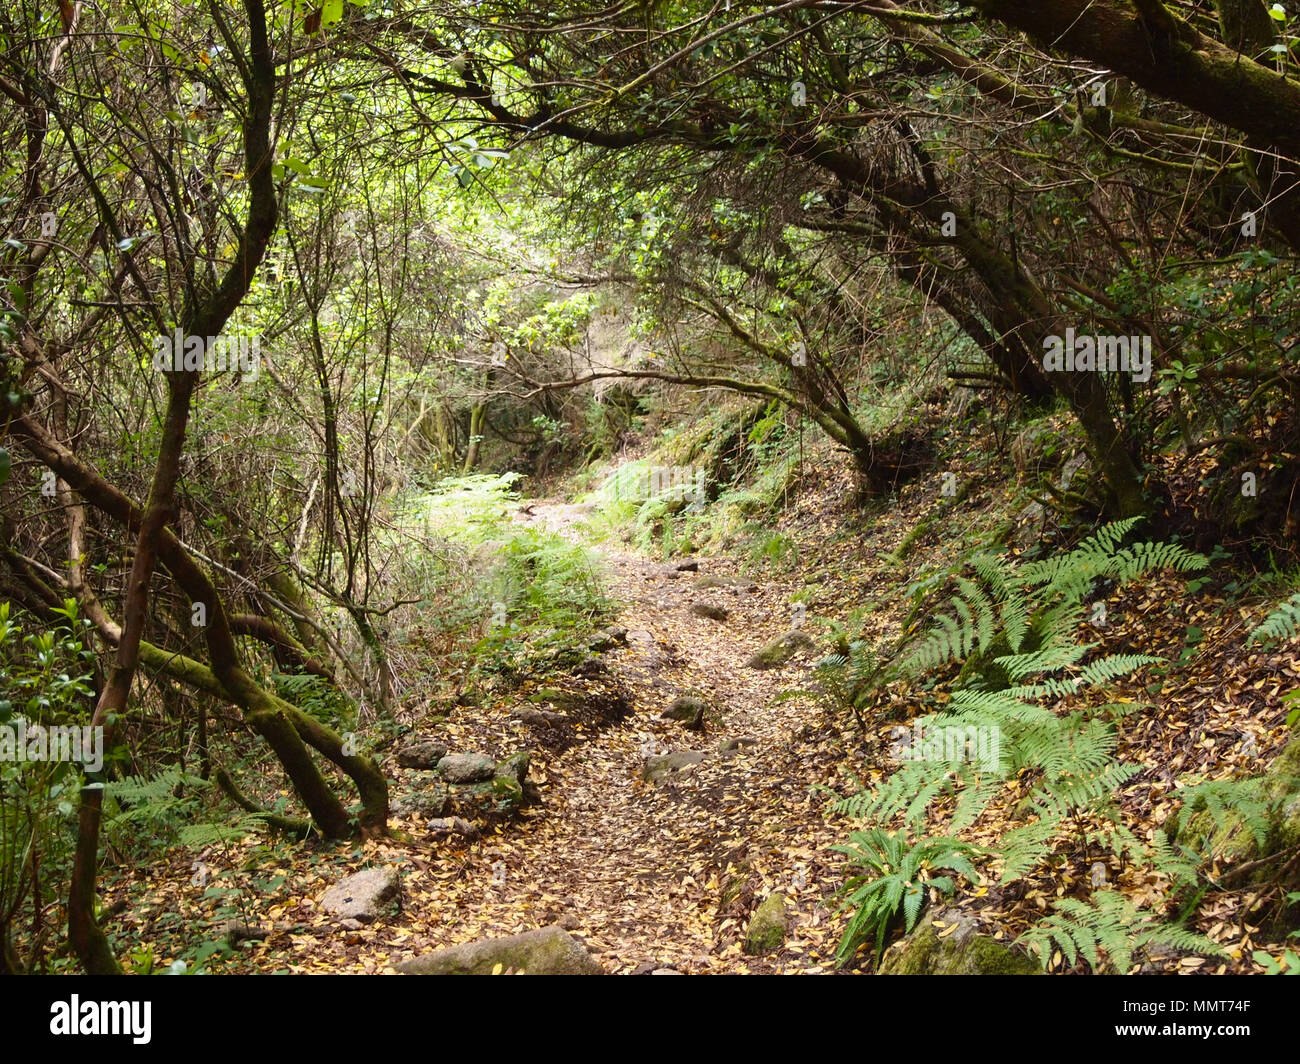 The Mata da Albergaria, a well-preserved oak forest within Peneda-Gerês national park, northern Portugal - Stock Image